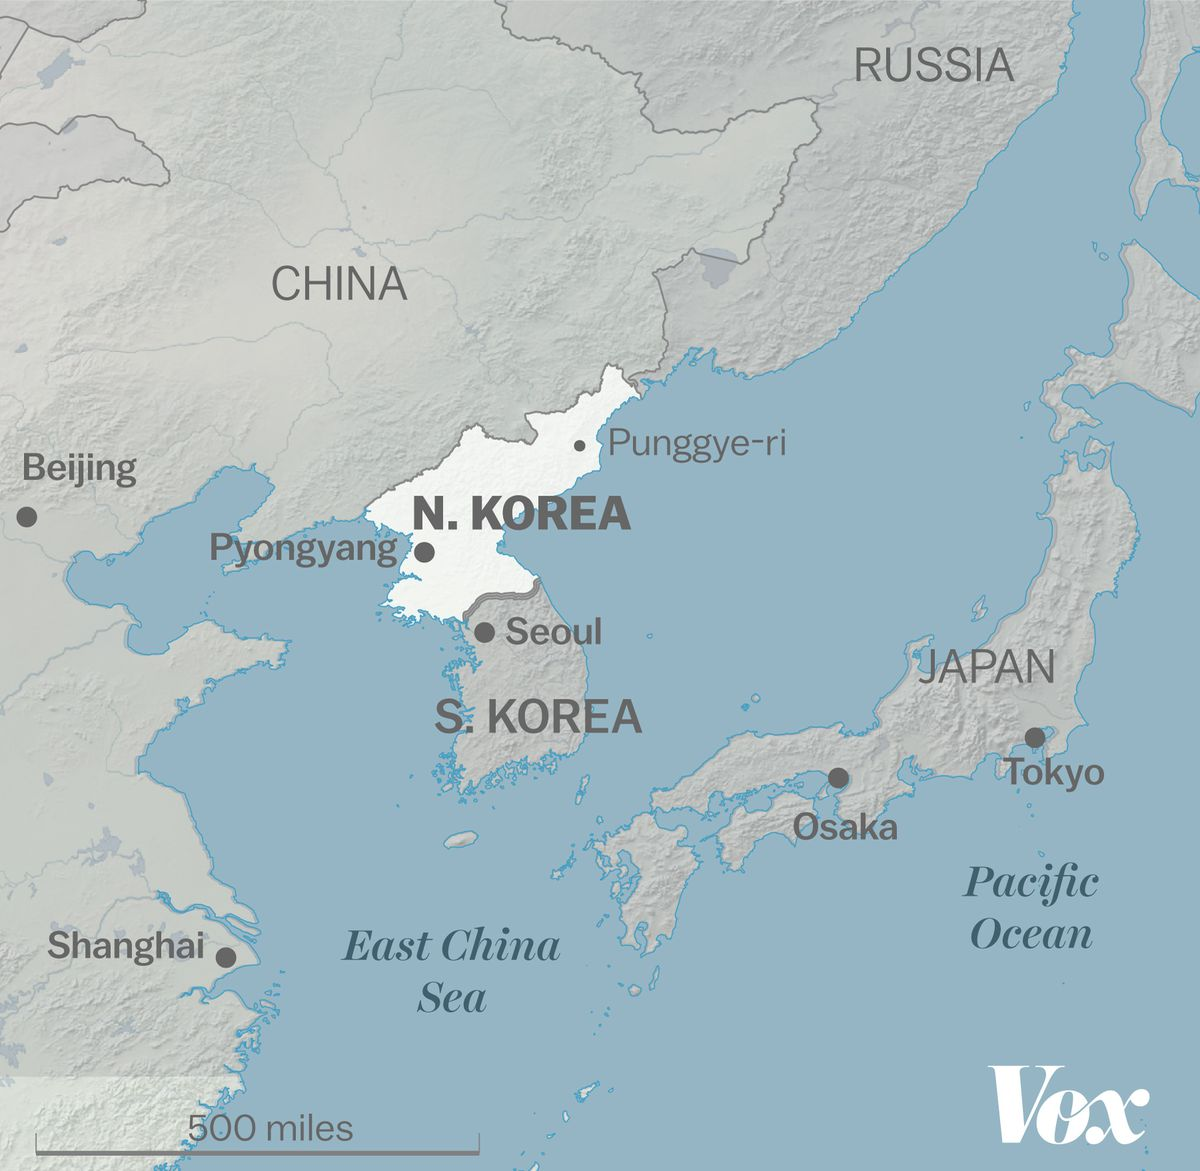 North korea 9 questions you were too embarrassed to ask vox since 1948 it has been run by the kim family the first leader was kim jong uns grandfather kim il sung who was in power from 1948 to 1994 gumiabroncs Image collections